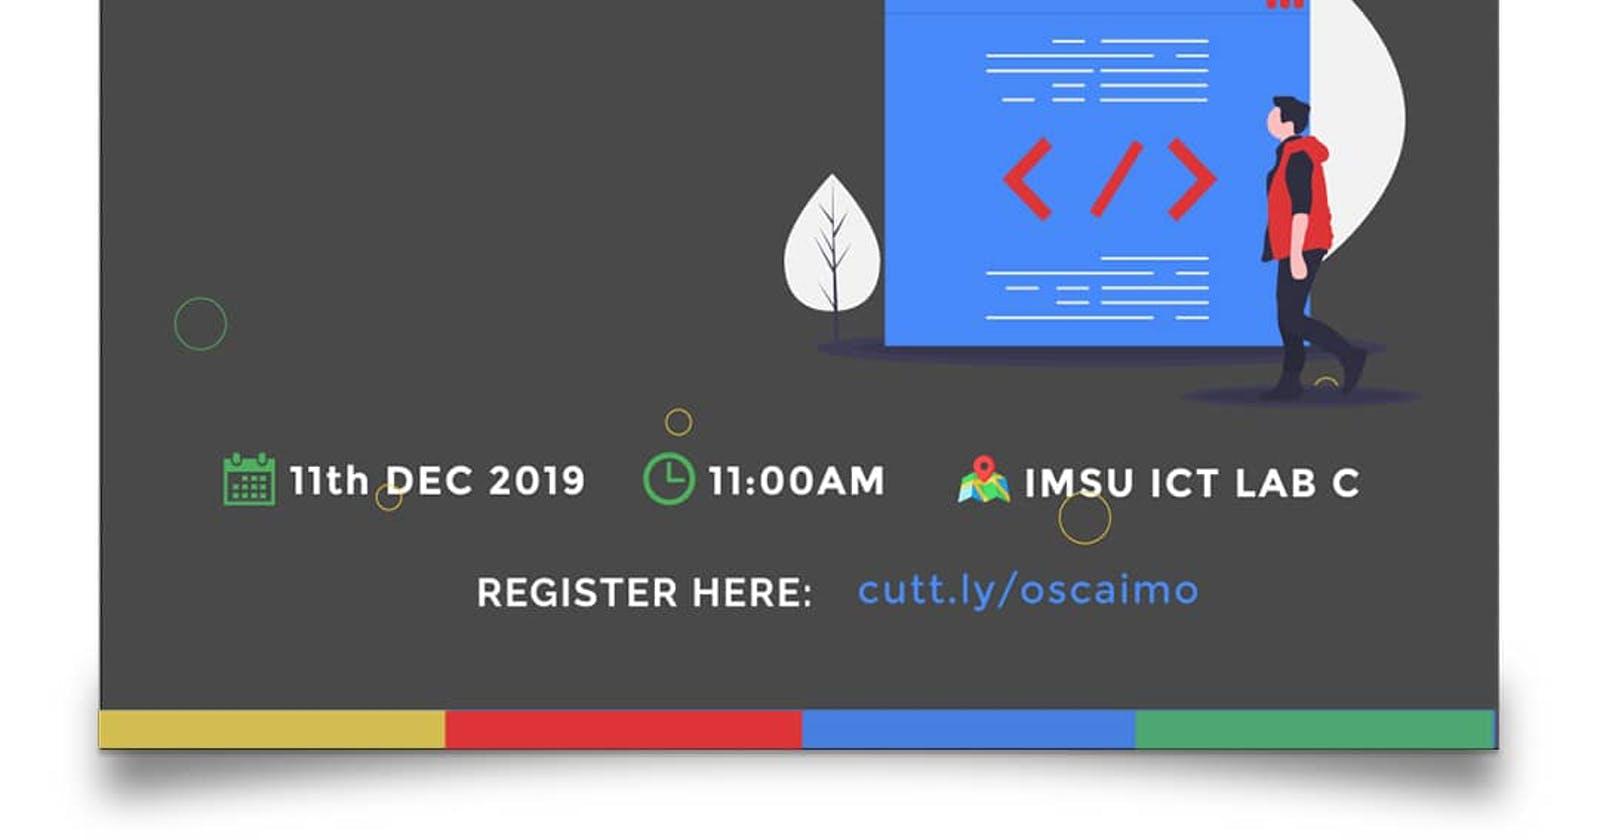 OSCAIMO: Let's Do This The Open Source Way